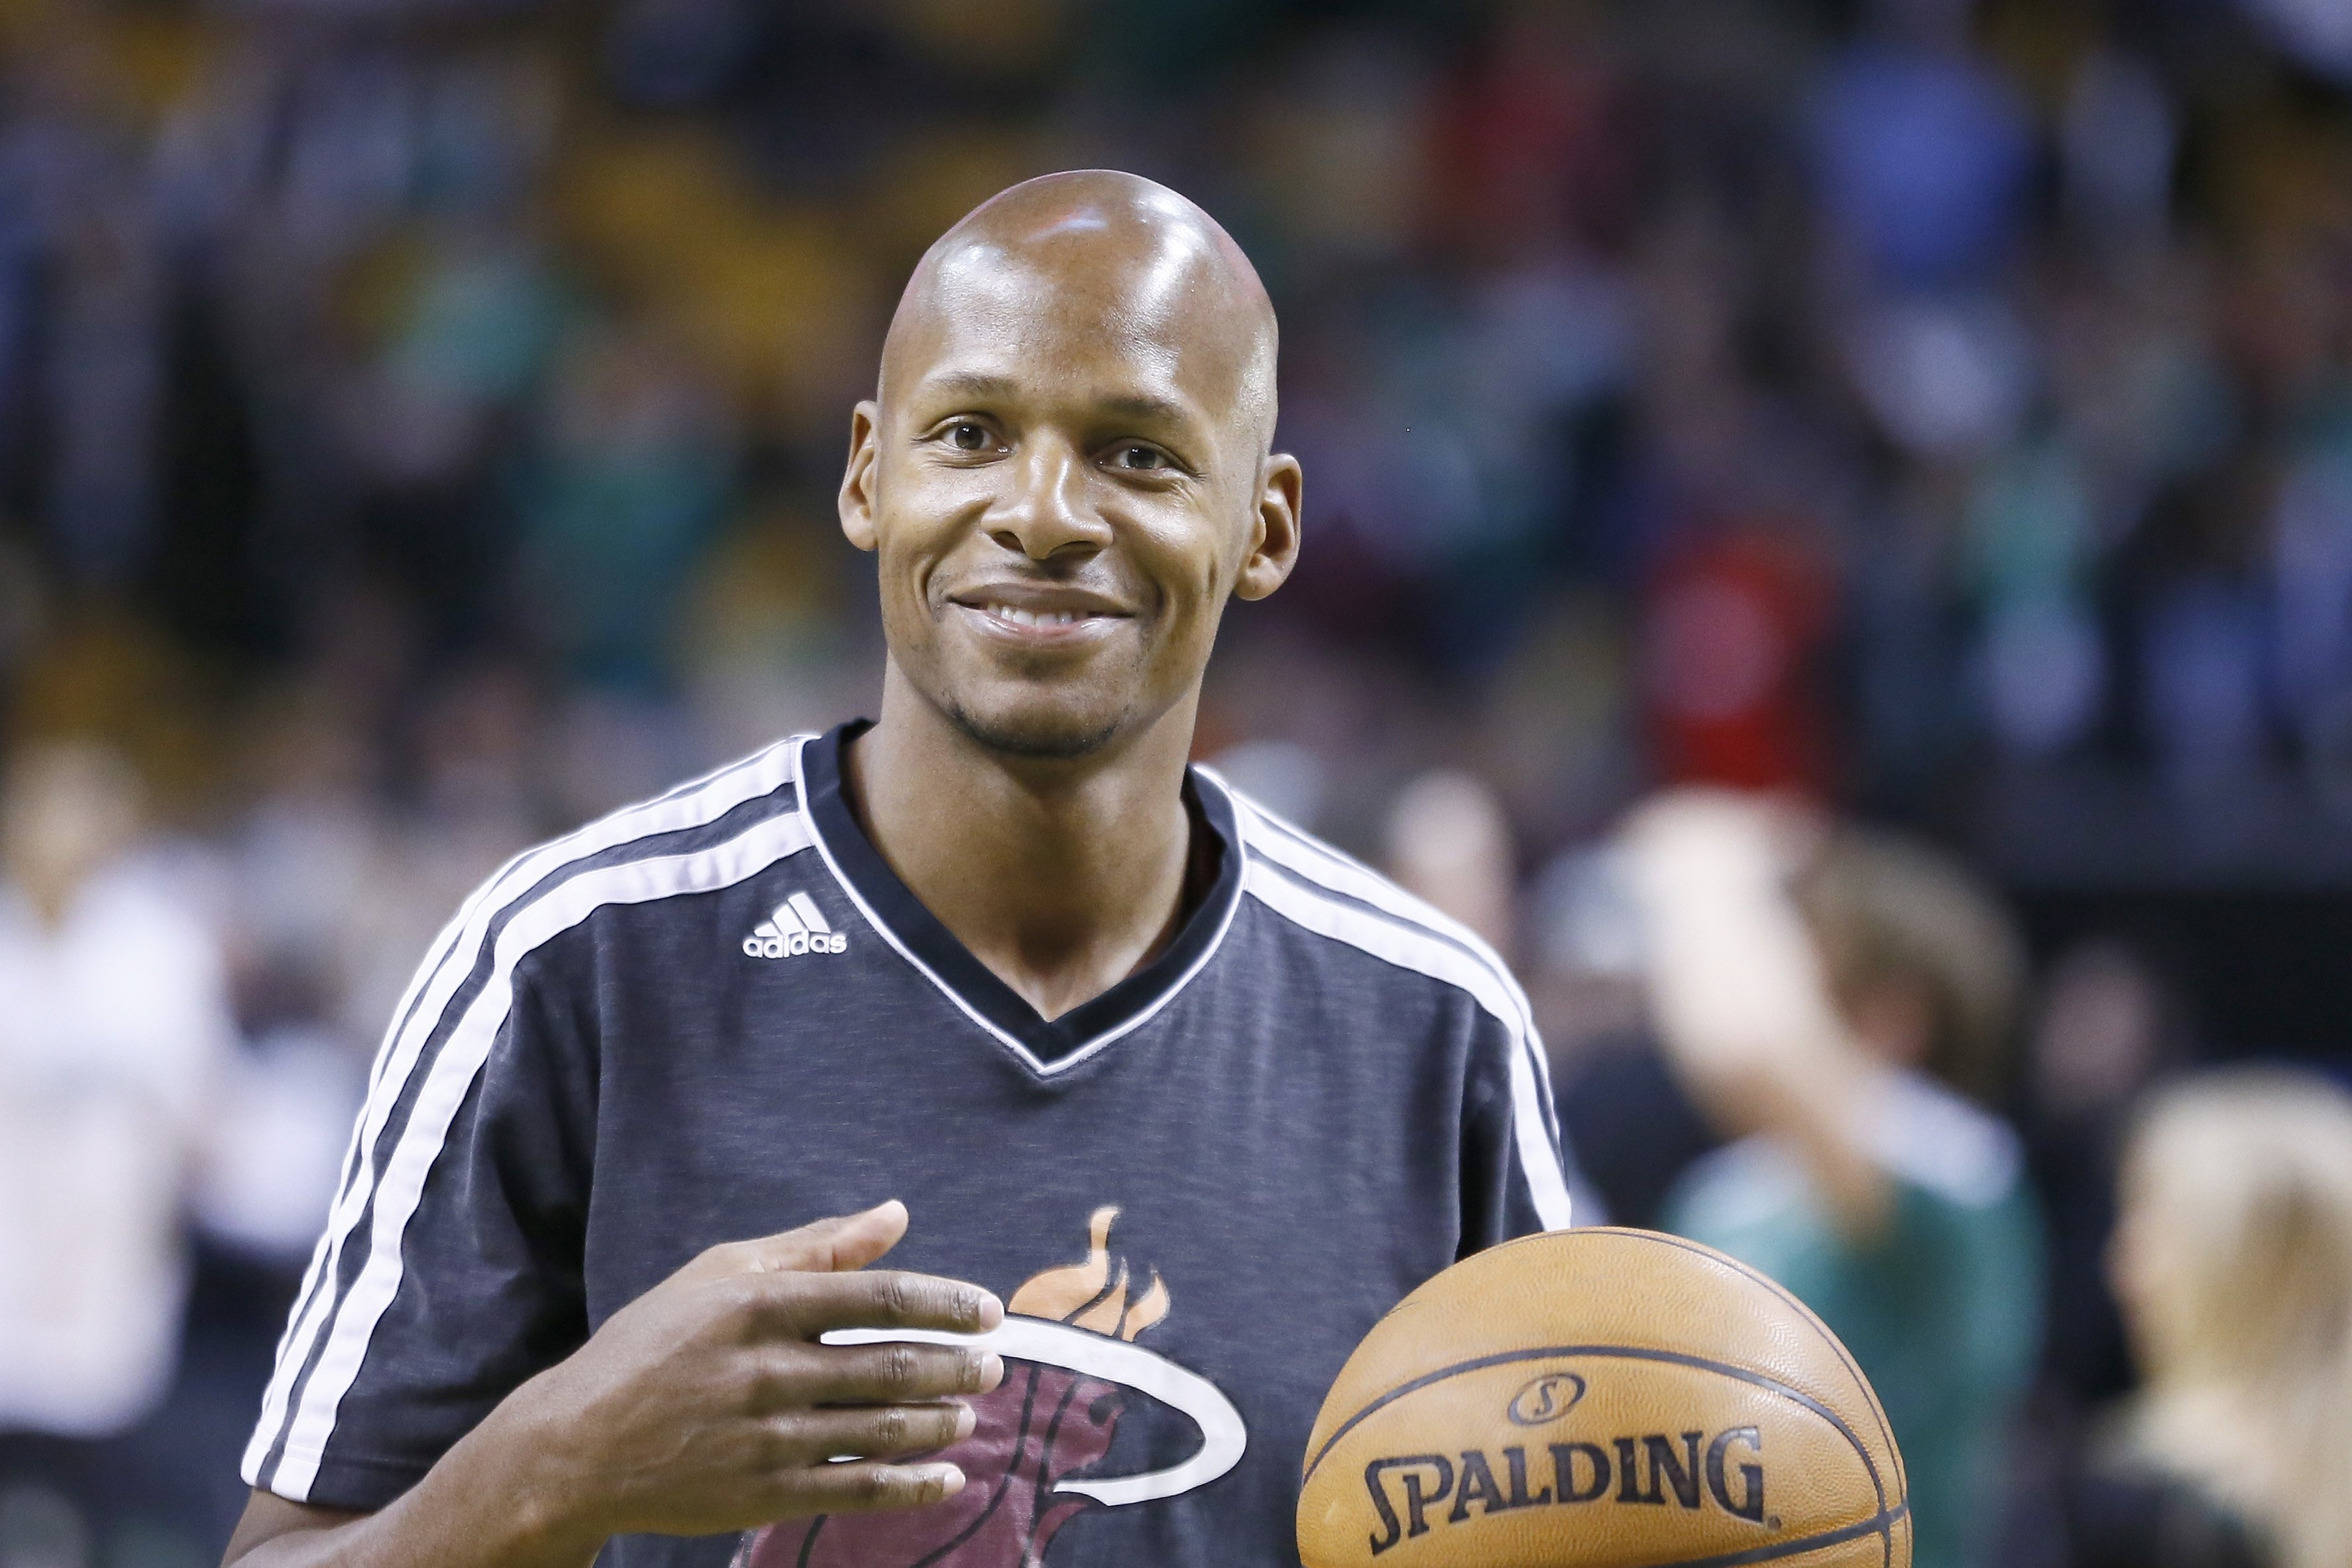 Ray Allen warming up before a Miami Heat game against the Boston Celtics at TD Garden on March 18, 2013 in Boston, Massachusetts. |Source: Getty Images